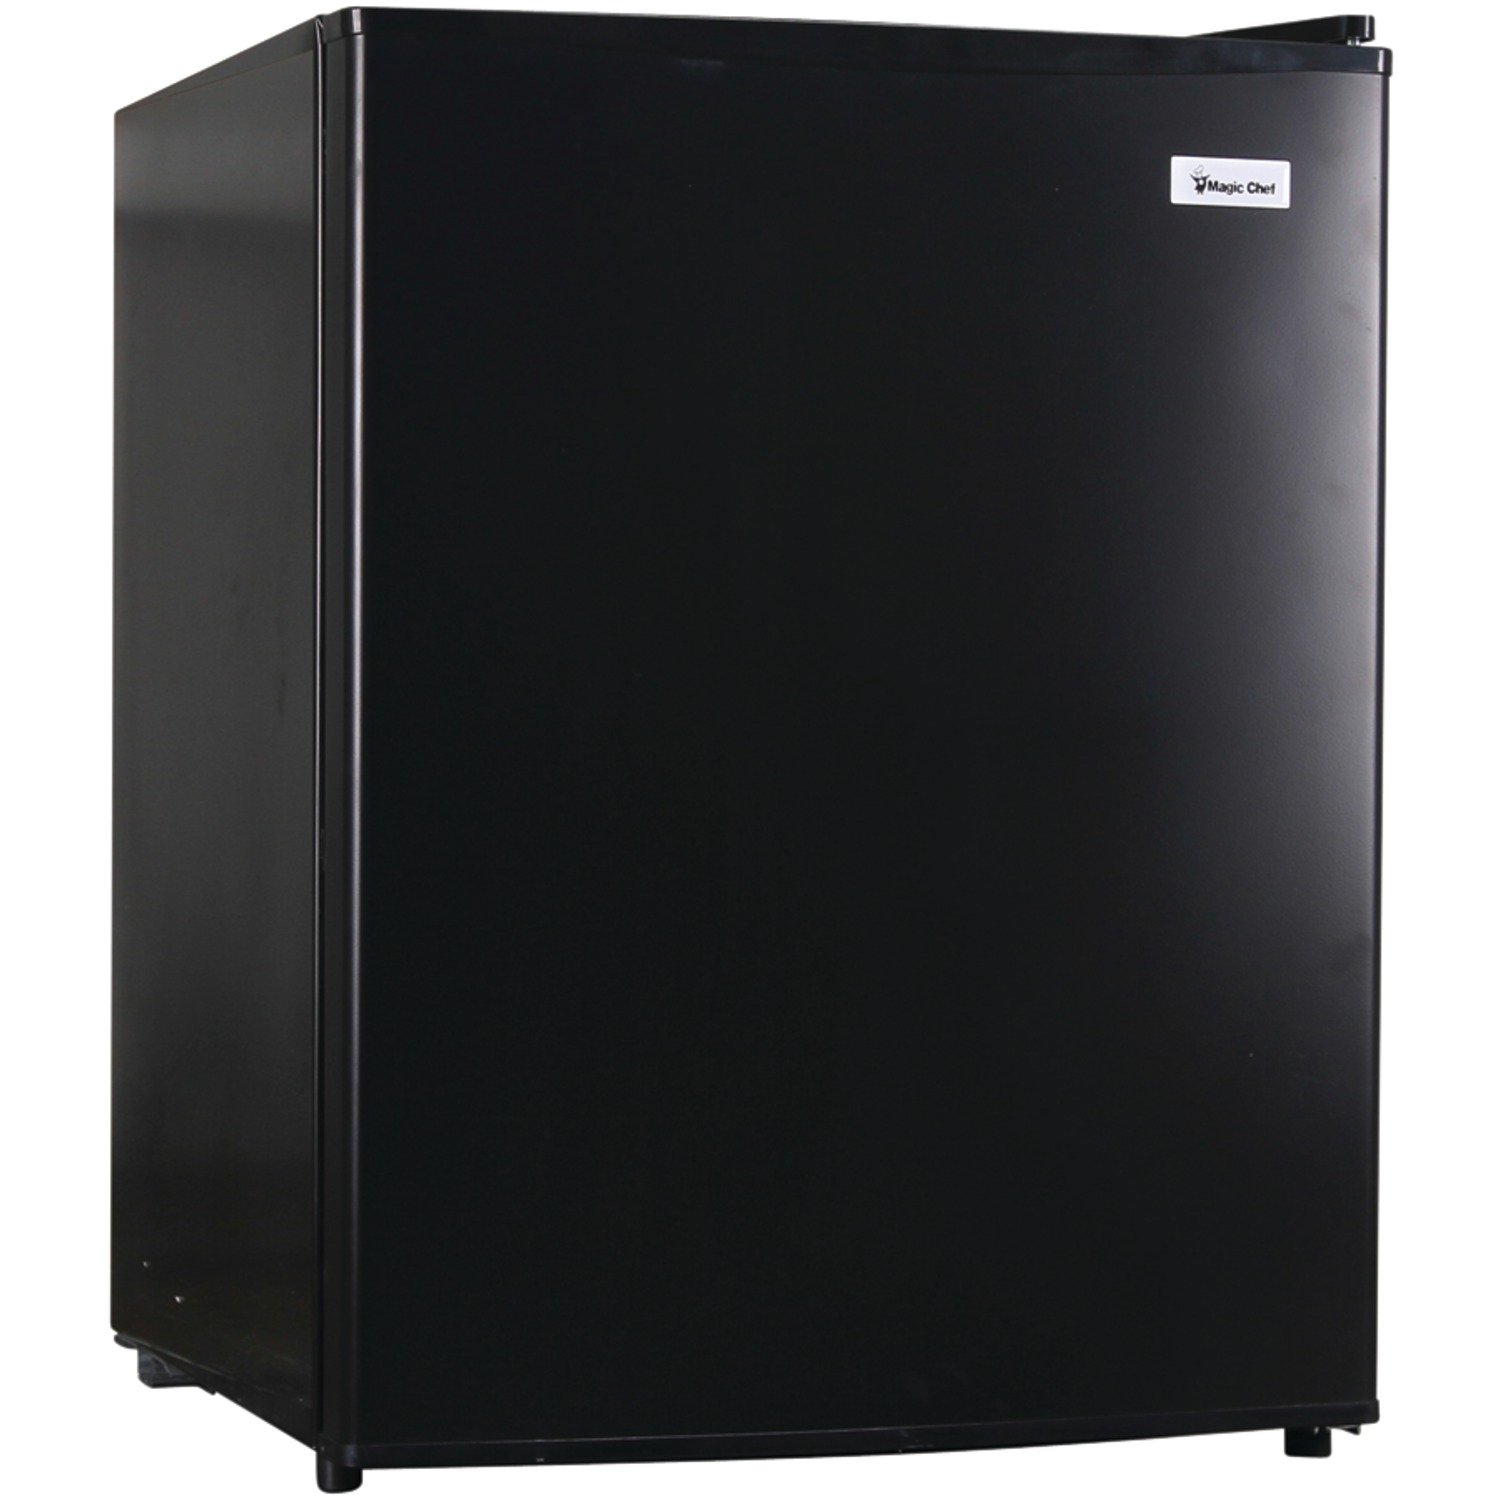 Where can I buy mini-refrigerators for private hotels 99